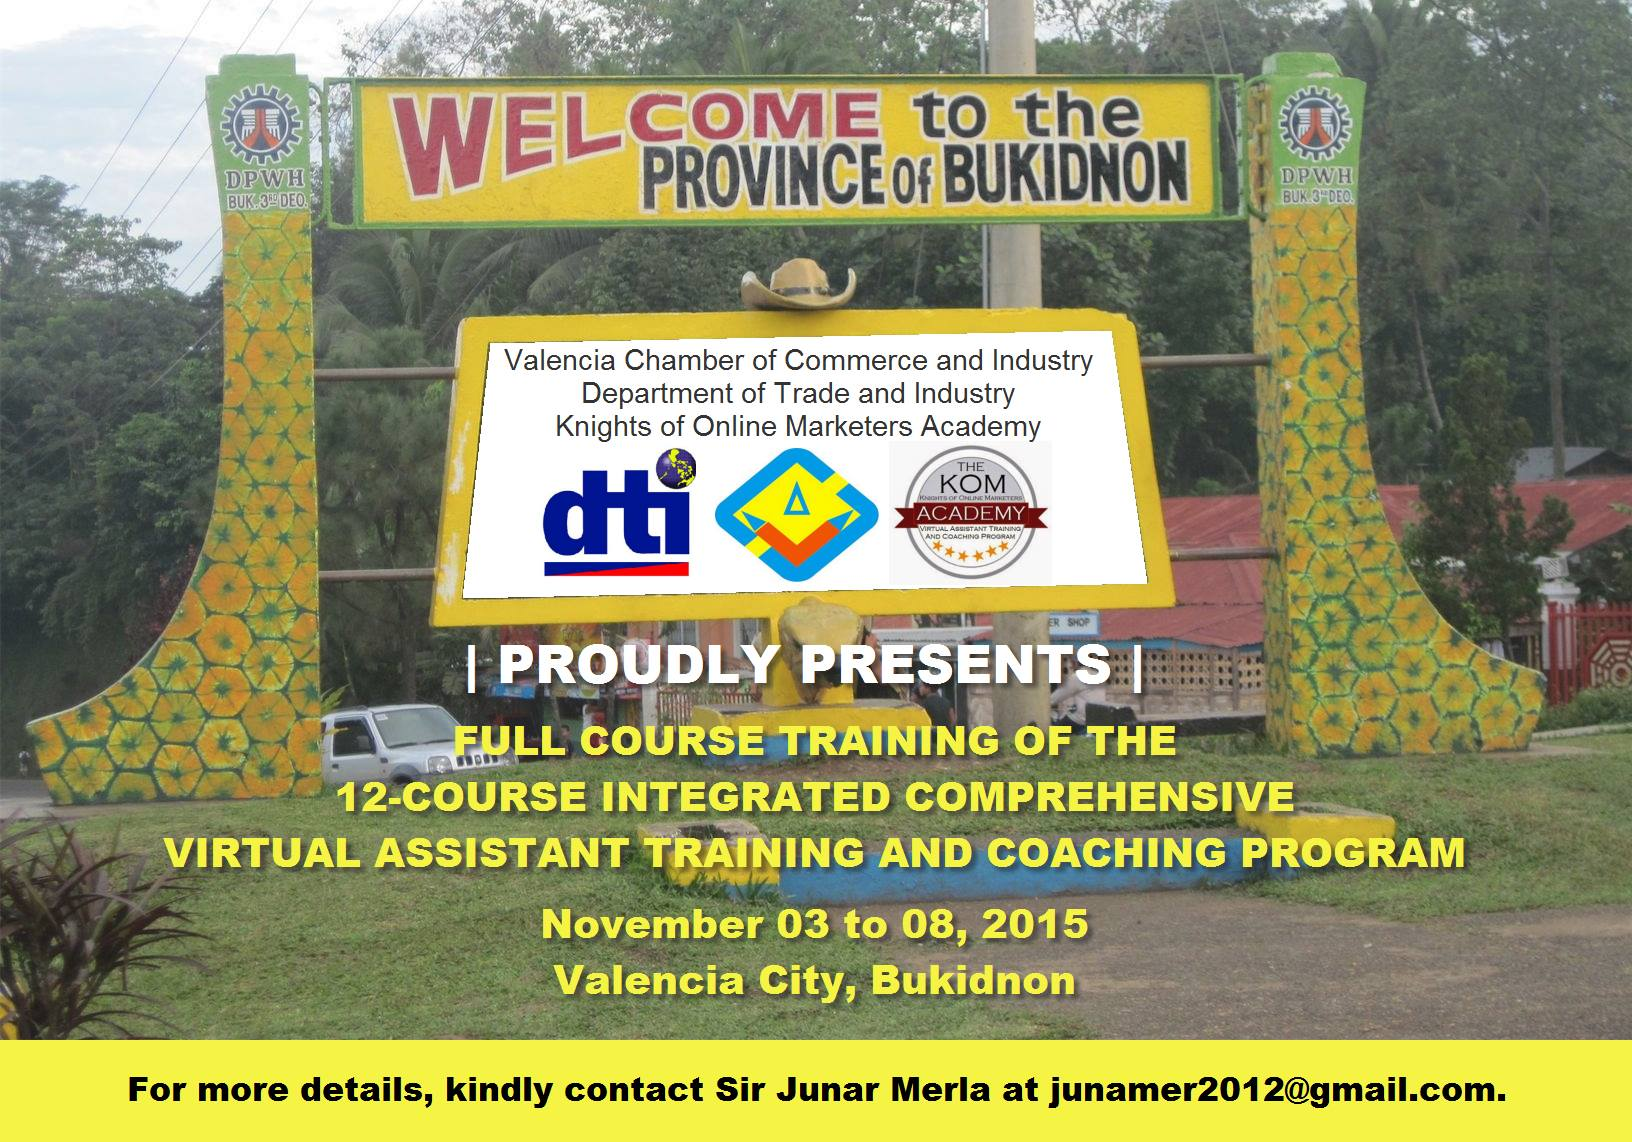 Bukidnon Virtual Assistant Training